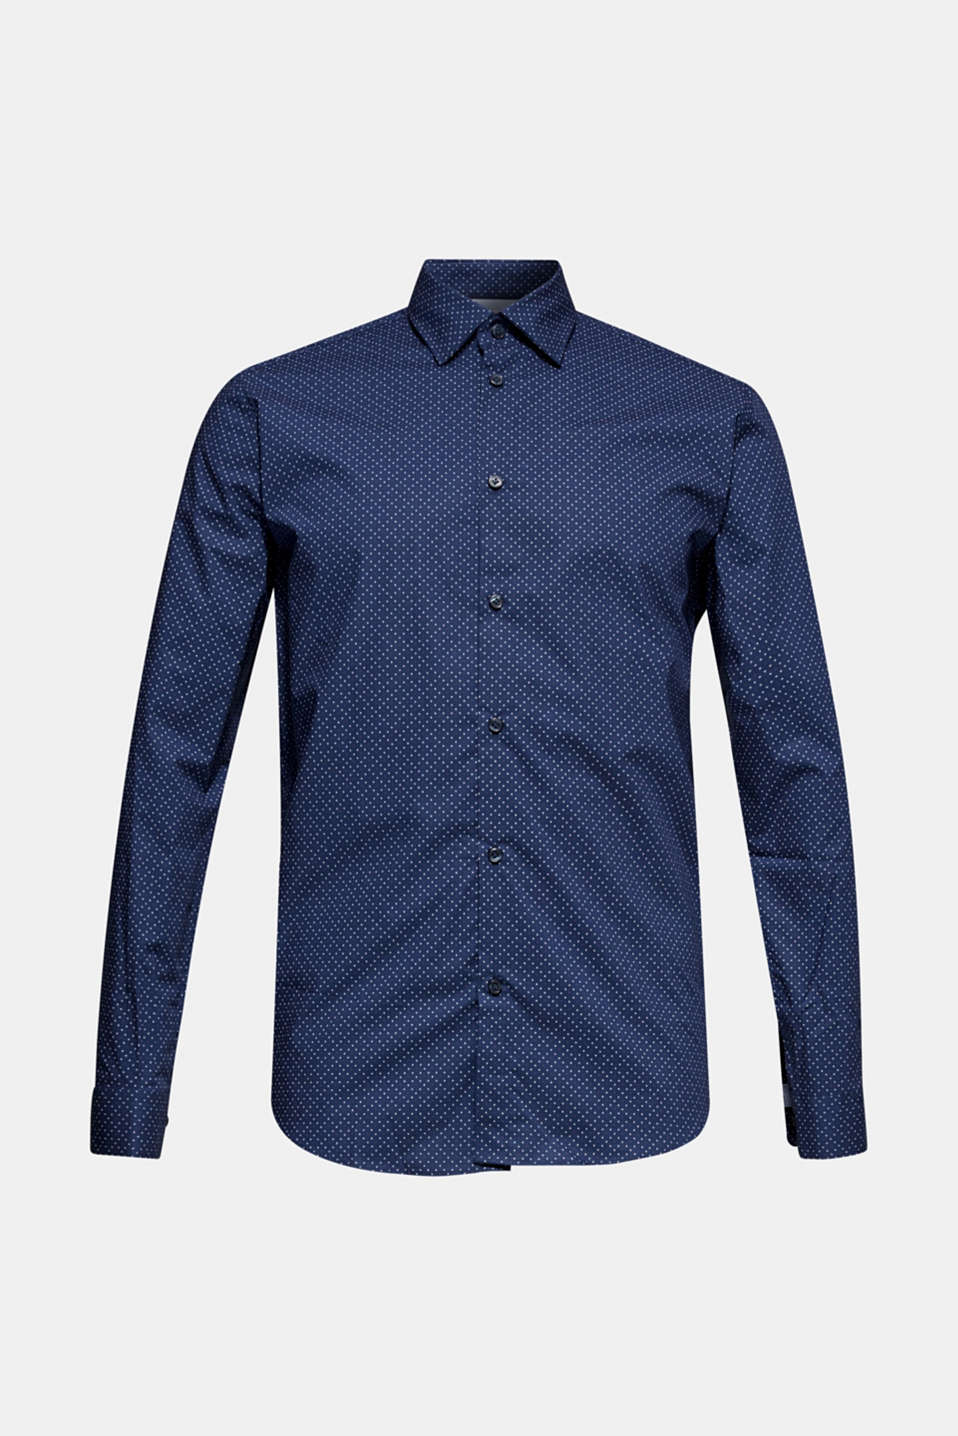 Shirt with micro print, 100% cotton, NAVY, detail image number 7